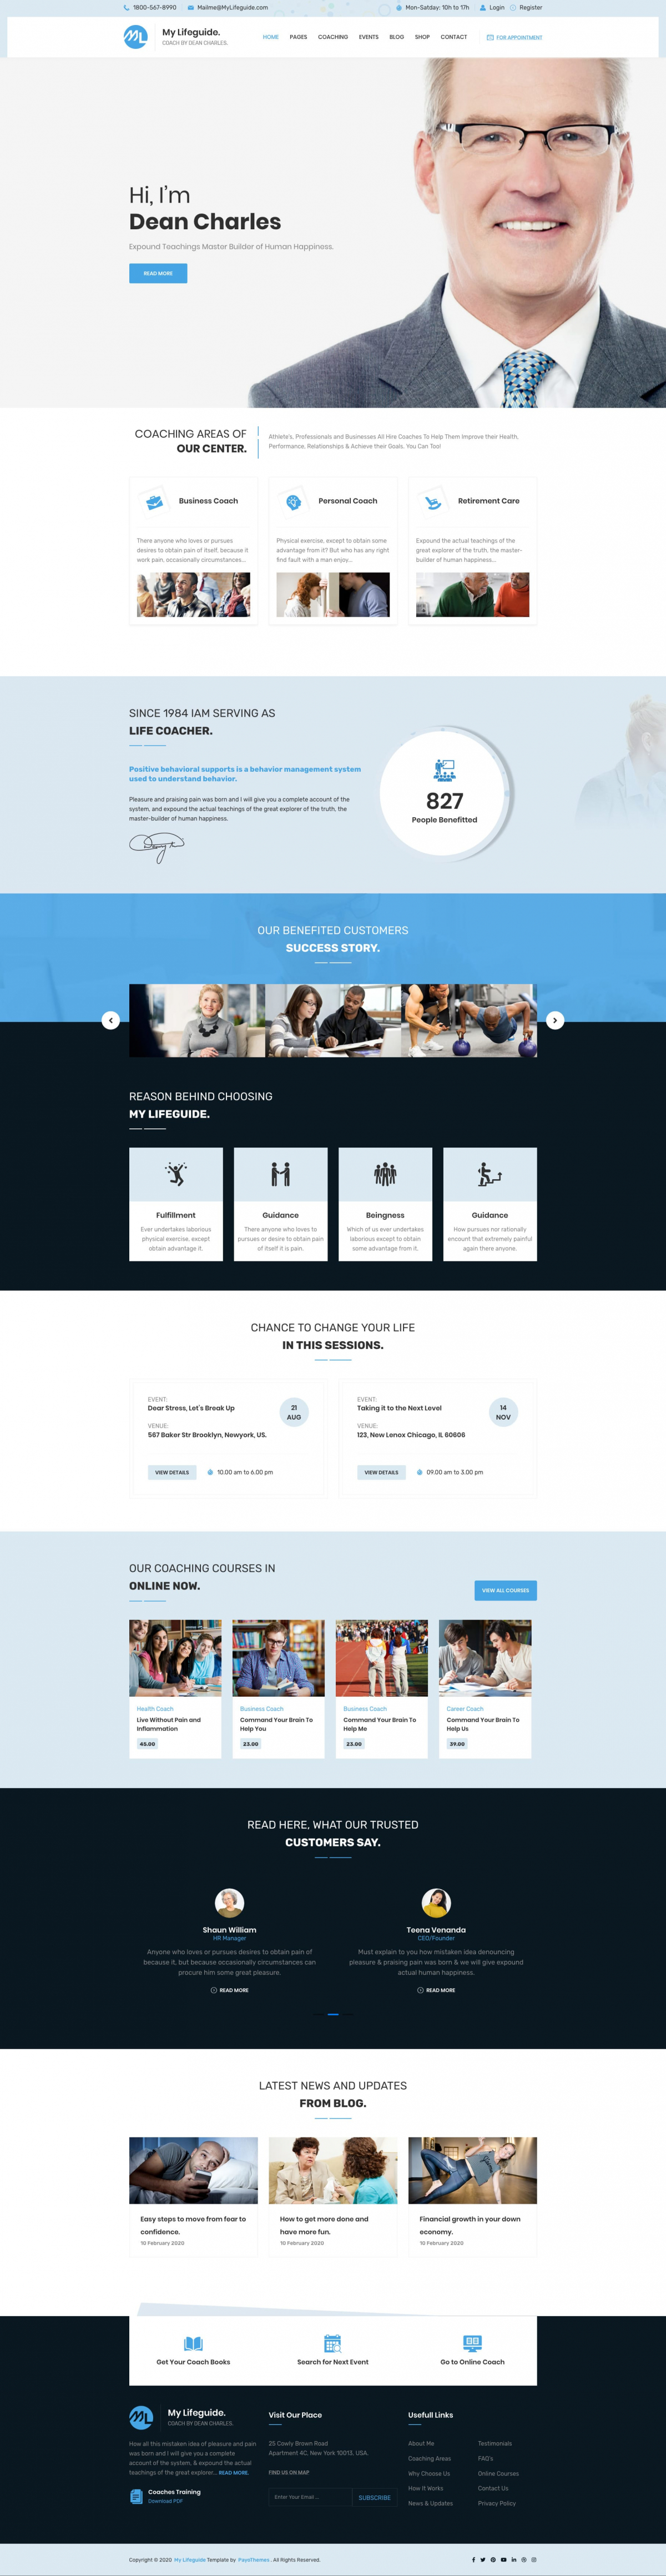 LifeGuide - Personal and Life Coach Joomla Template